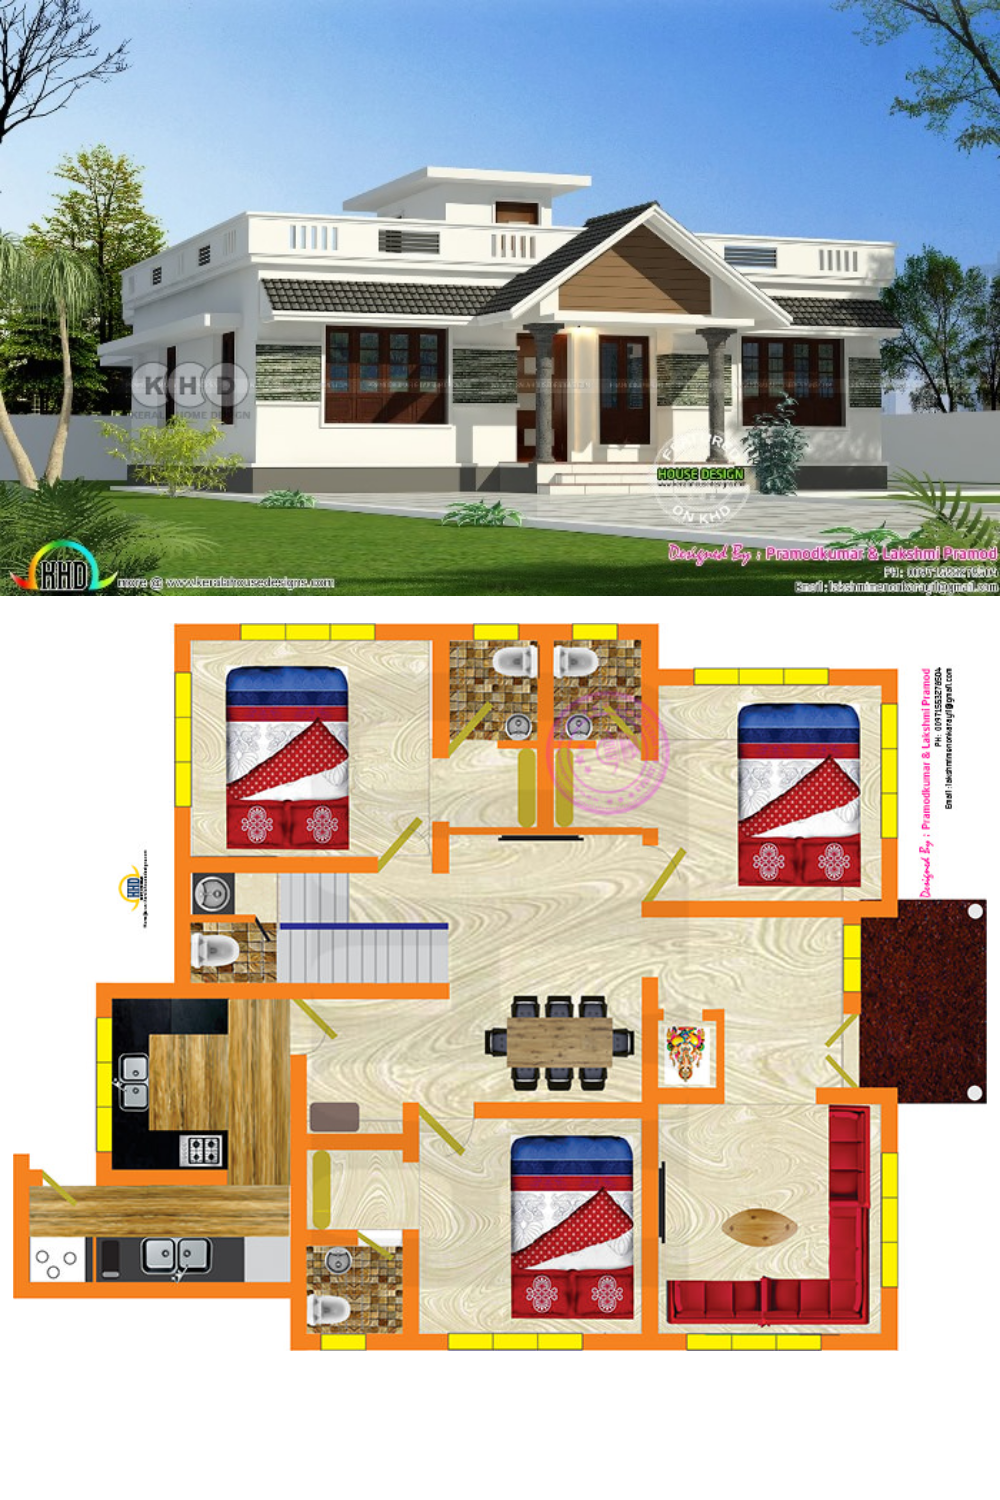 Stunning Three Bedroom Bungalow With Roof Deck My House Plans Model House Plan Bungalow With Roof Deck